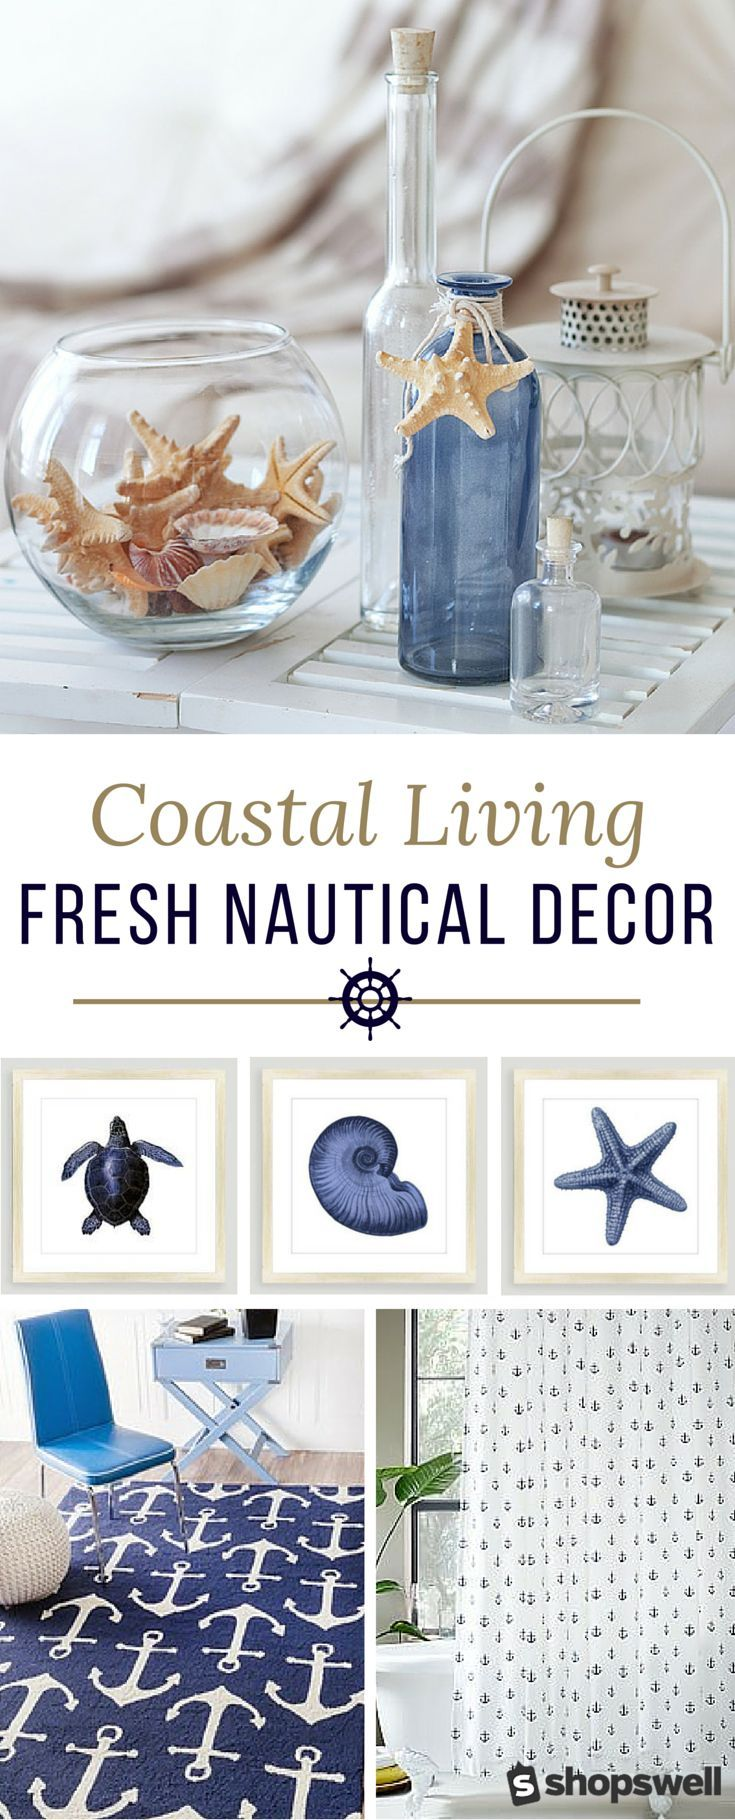 42 Nautical Decor Necessities For The Perfect Coastal Living Space